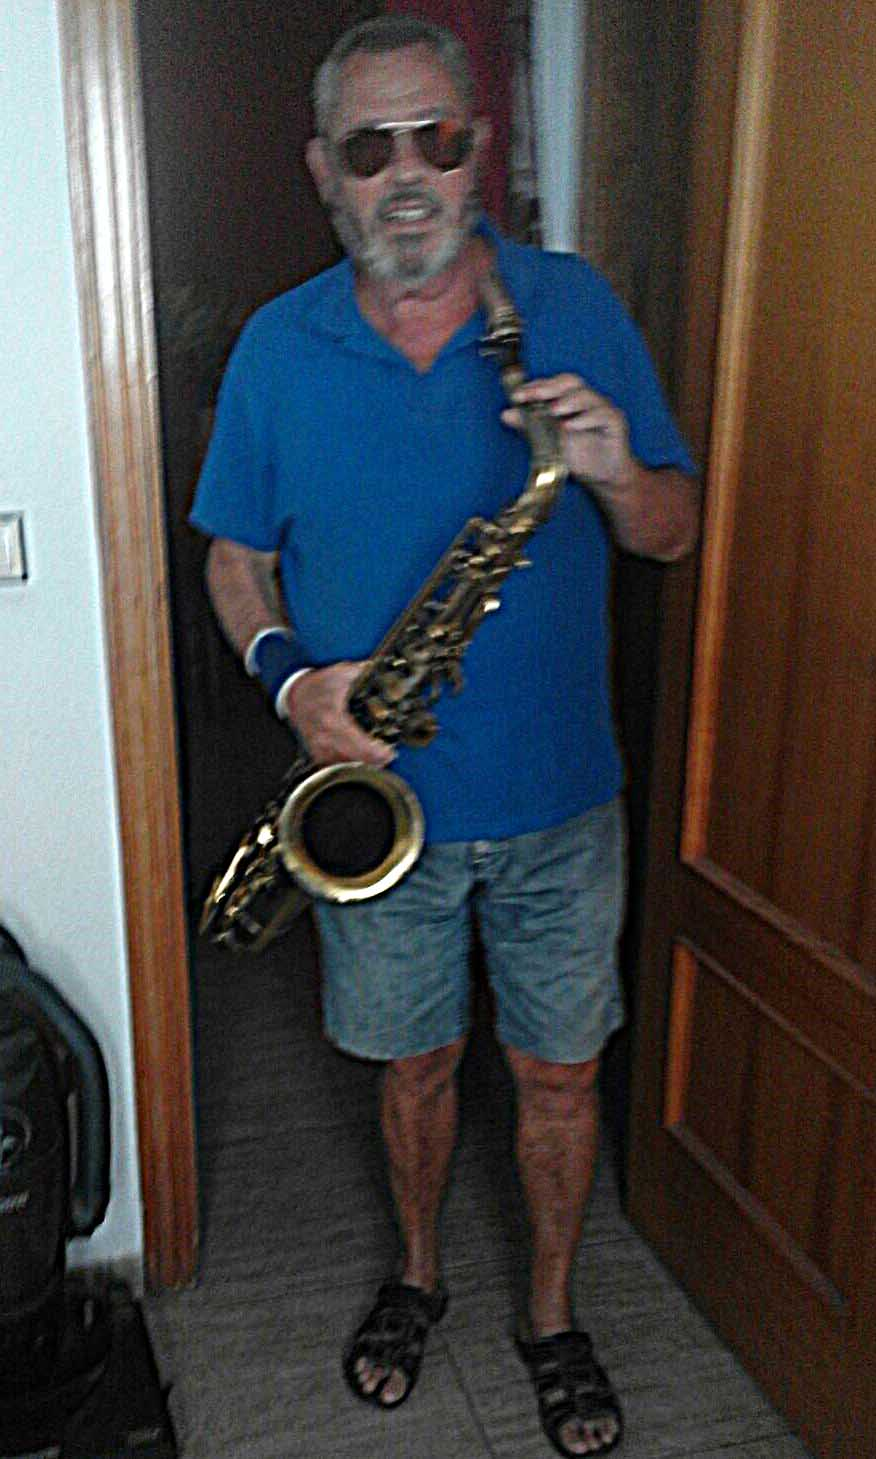 Eddie with his saxaphone